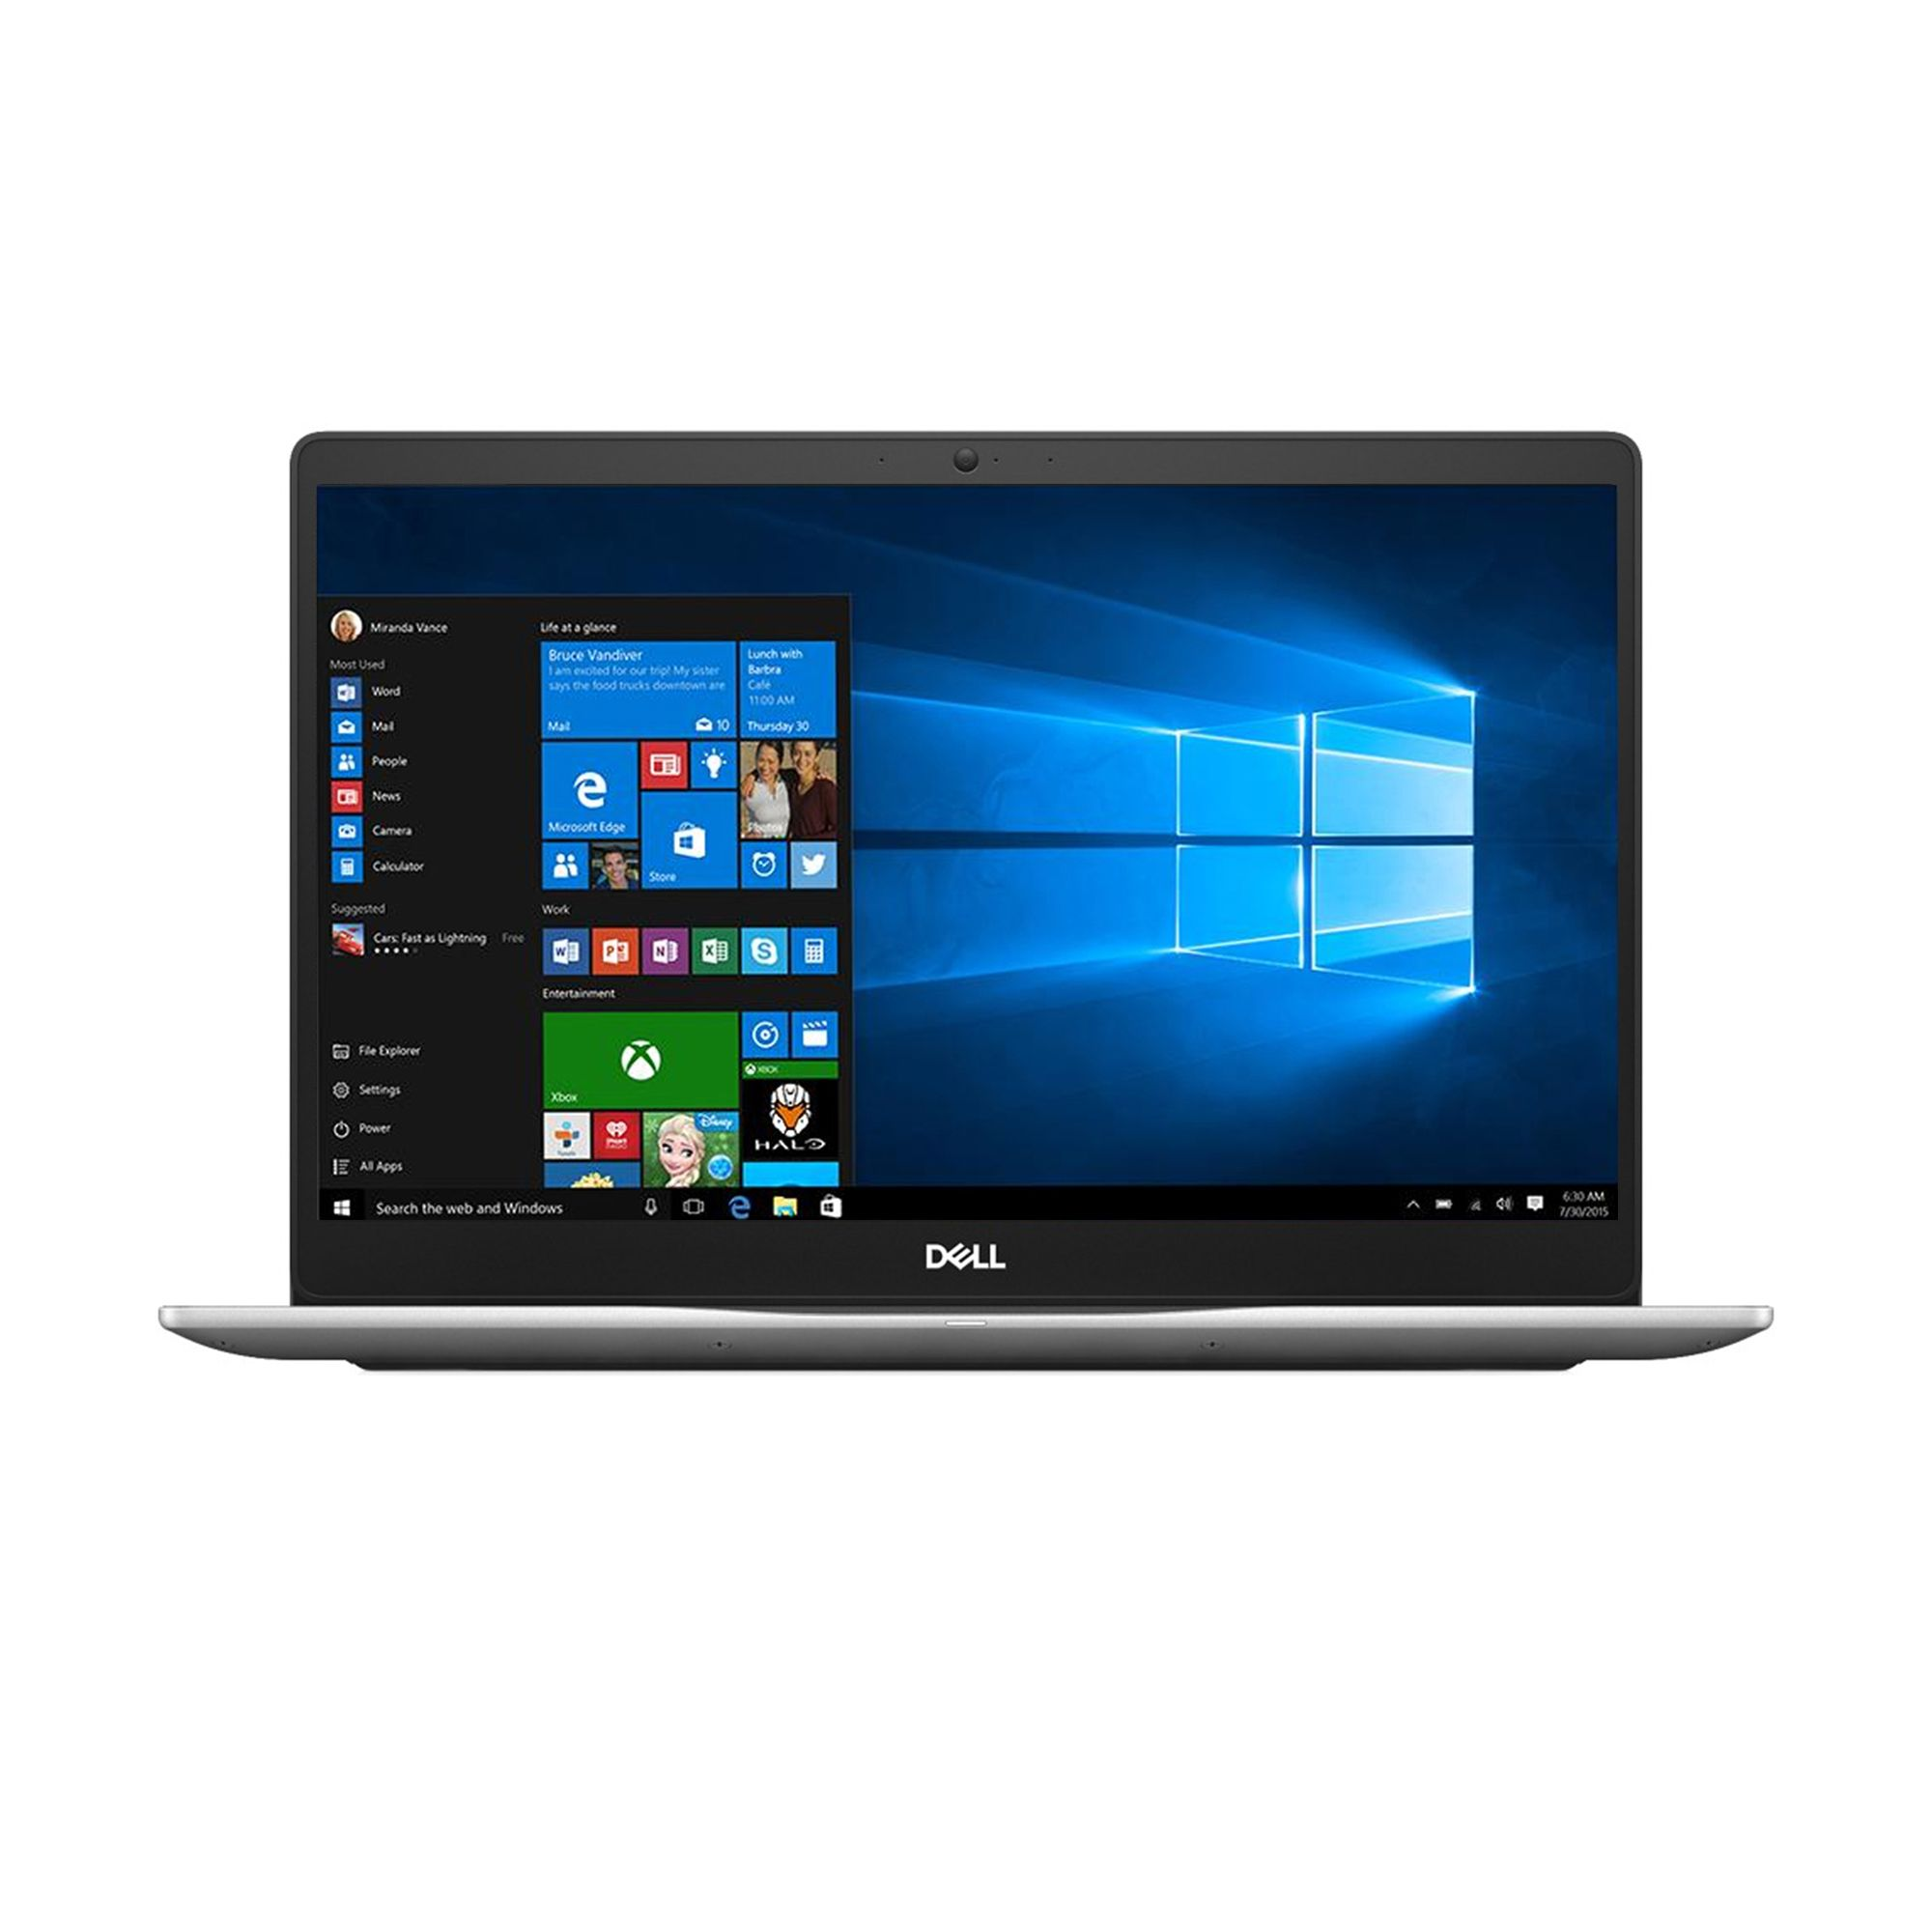 Notebook Dell Inspiron 7570 15.6 Full HD Intel Core i7-8550U 940MX-4GB RAM 8GB HDD 1TB + SSD 256GB CIS Windows 10 Pro